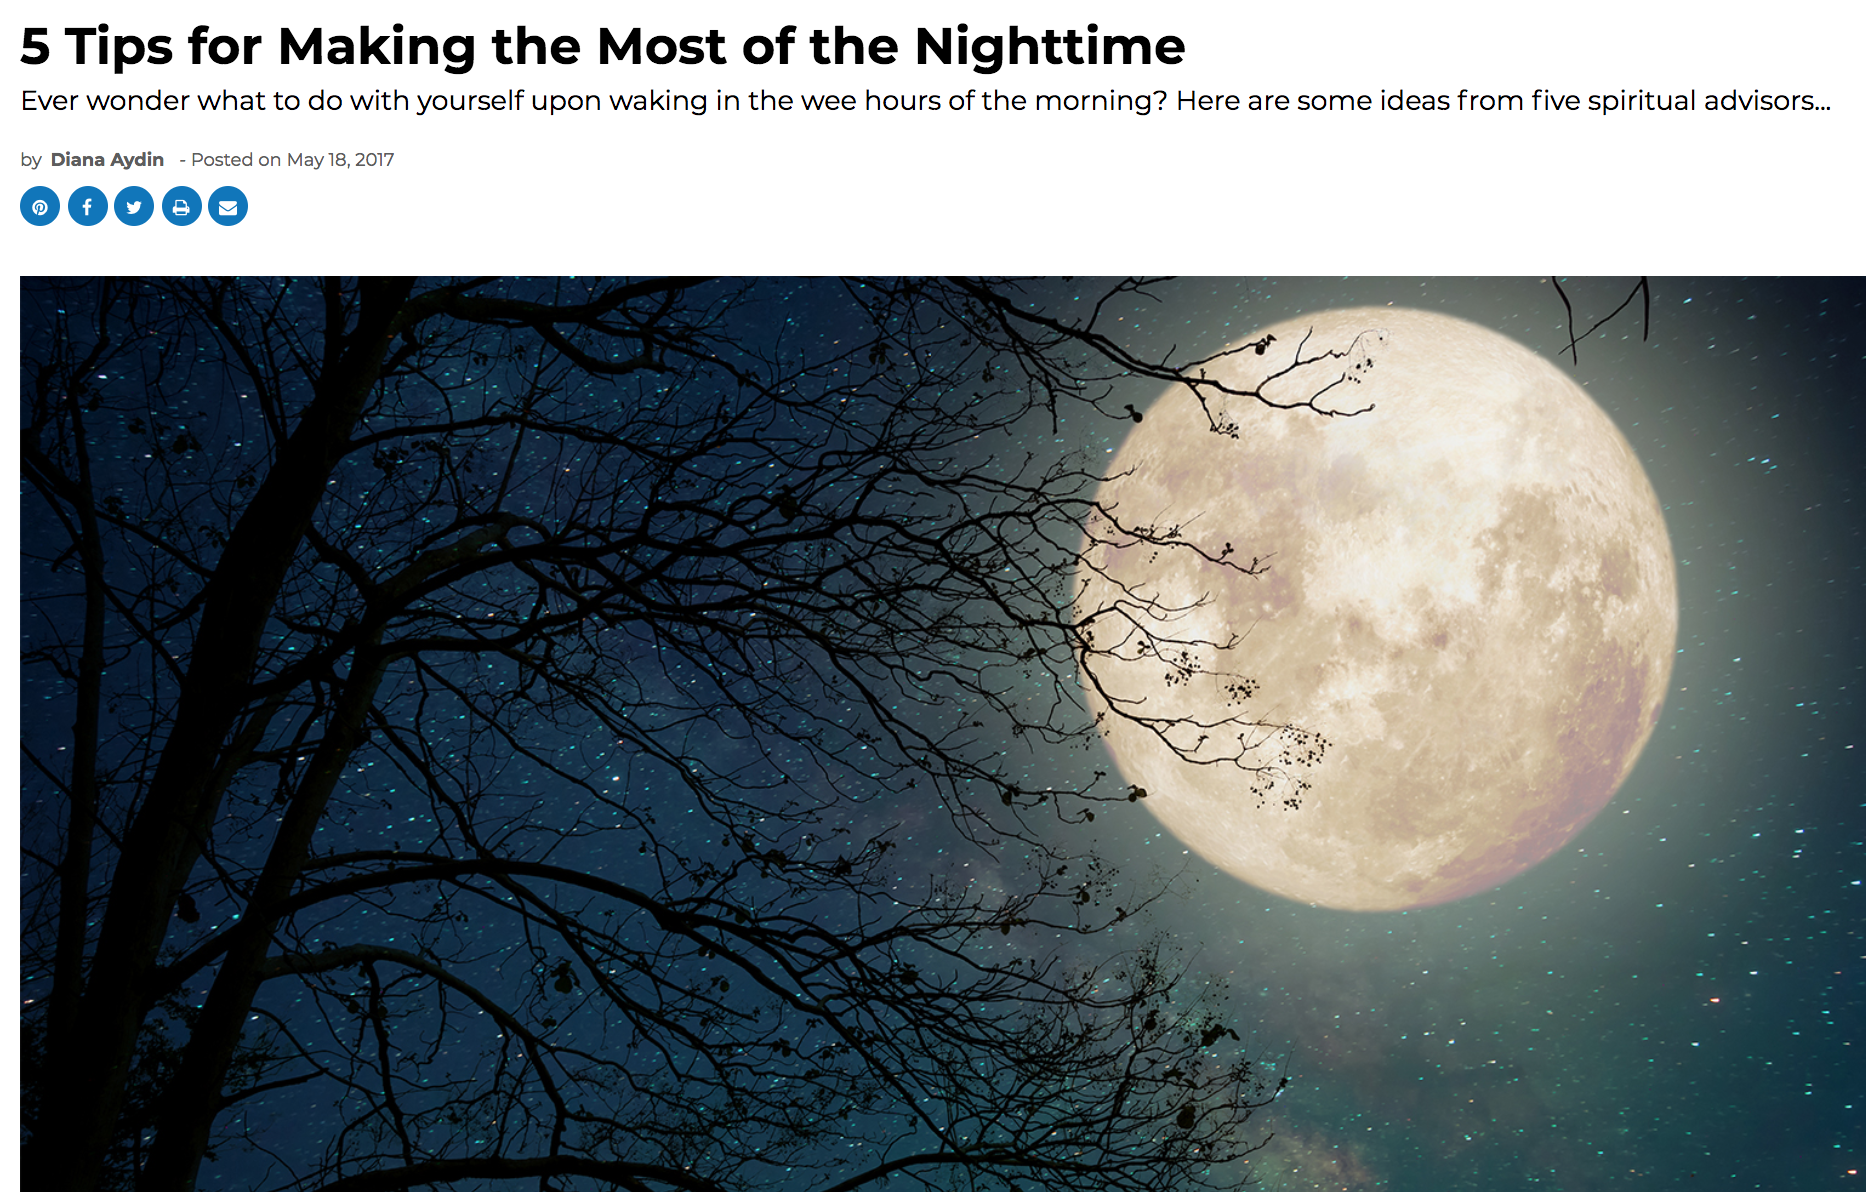 5 Tips for Making the Most of the Nighttime